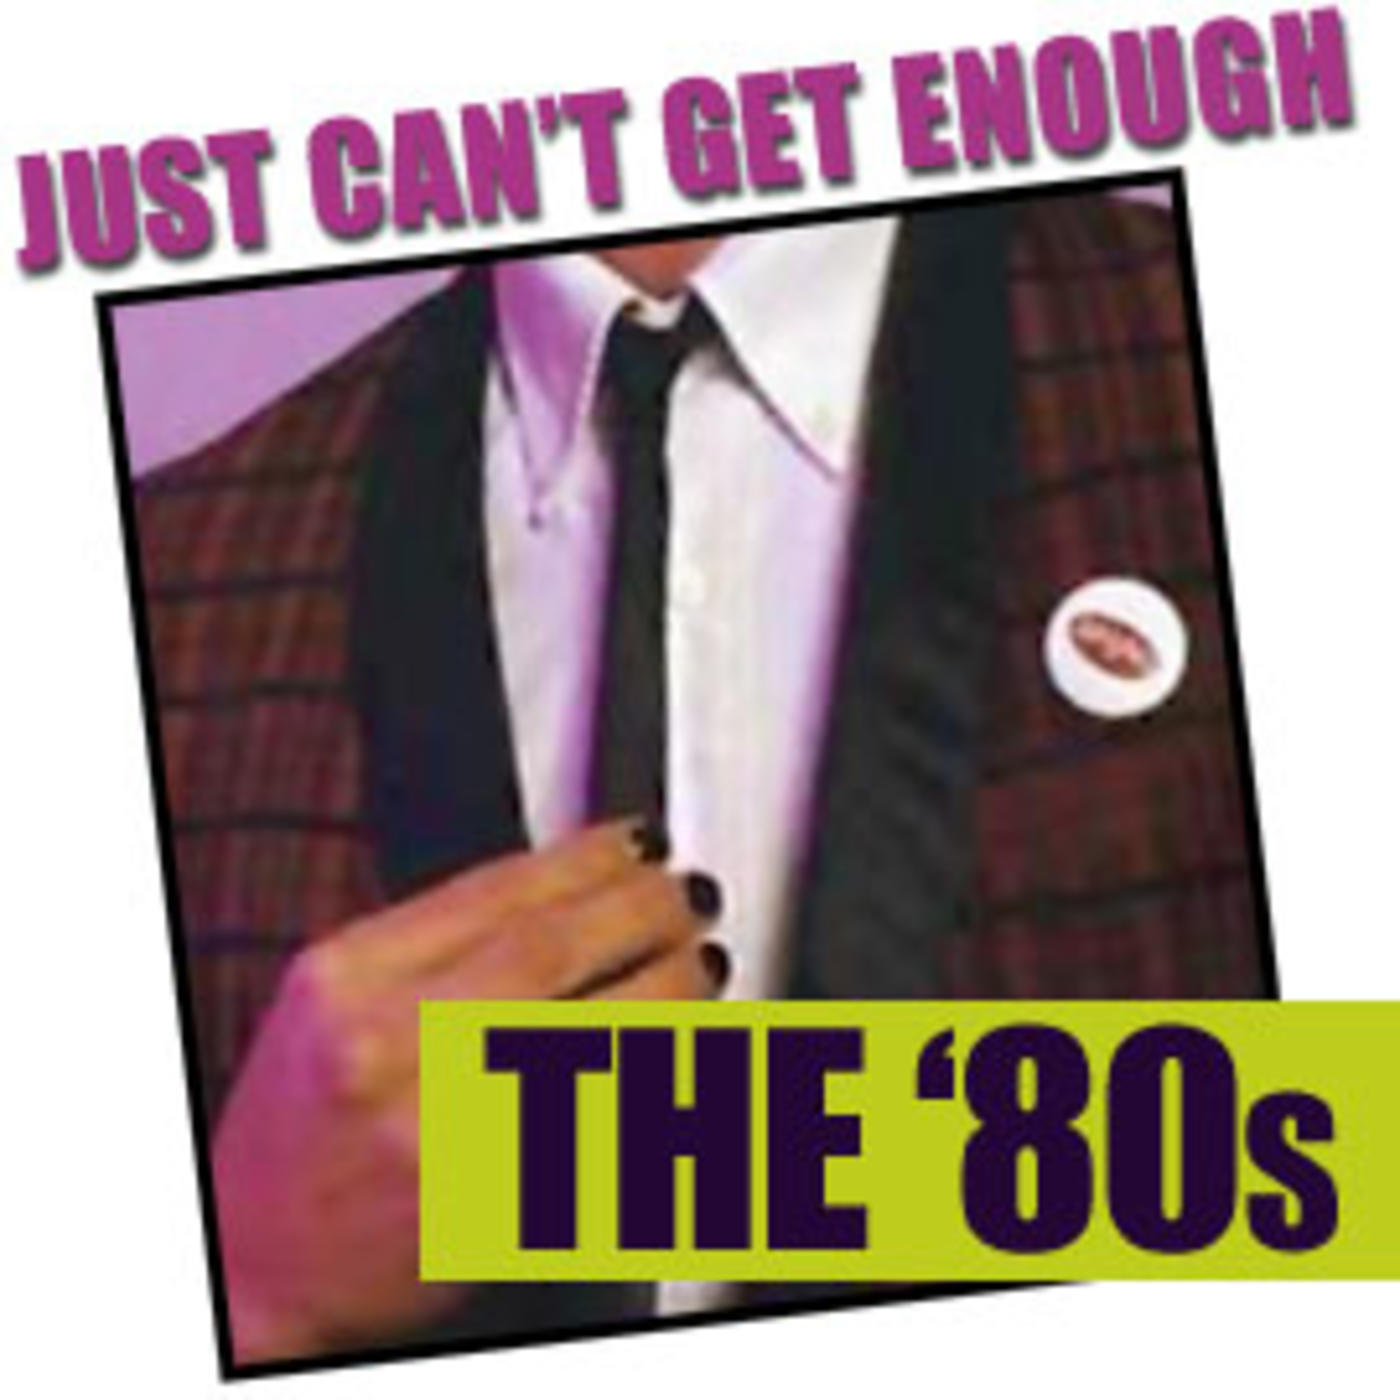 Just Can't Get Enough - The 80s - Presented By Slicing Up Eyeballs - Big Audio Dynamite, Talking Heads, Lords Of The New Church, Iggy Pop, Siouxsie And The Banshees, Pet Shop Boys